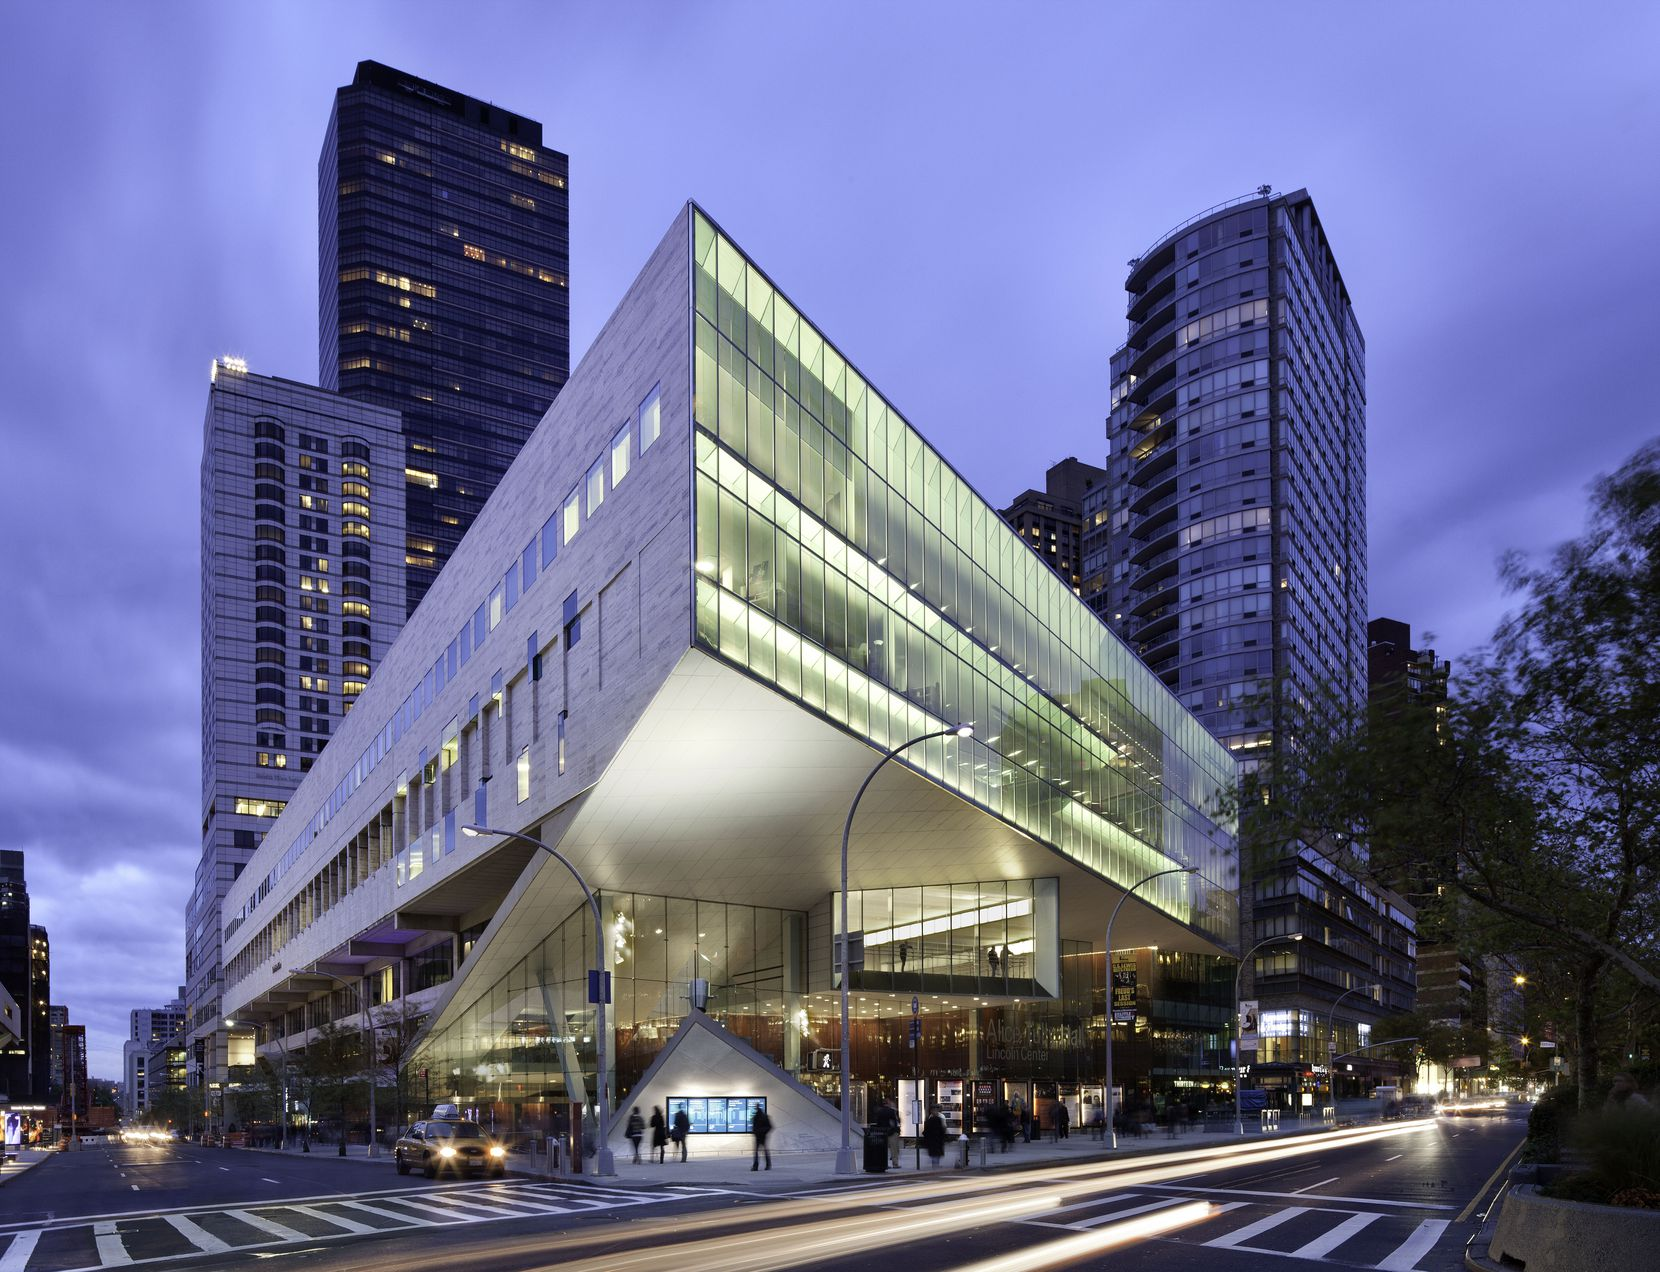 The Julliard School in New York City where five Booker T. Washington High School for the Performing and Visual Arts students will attend in August.